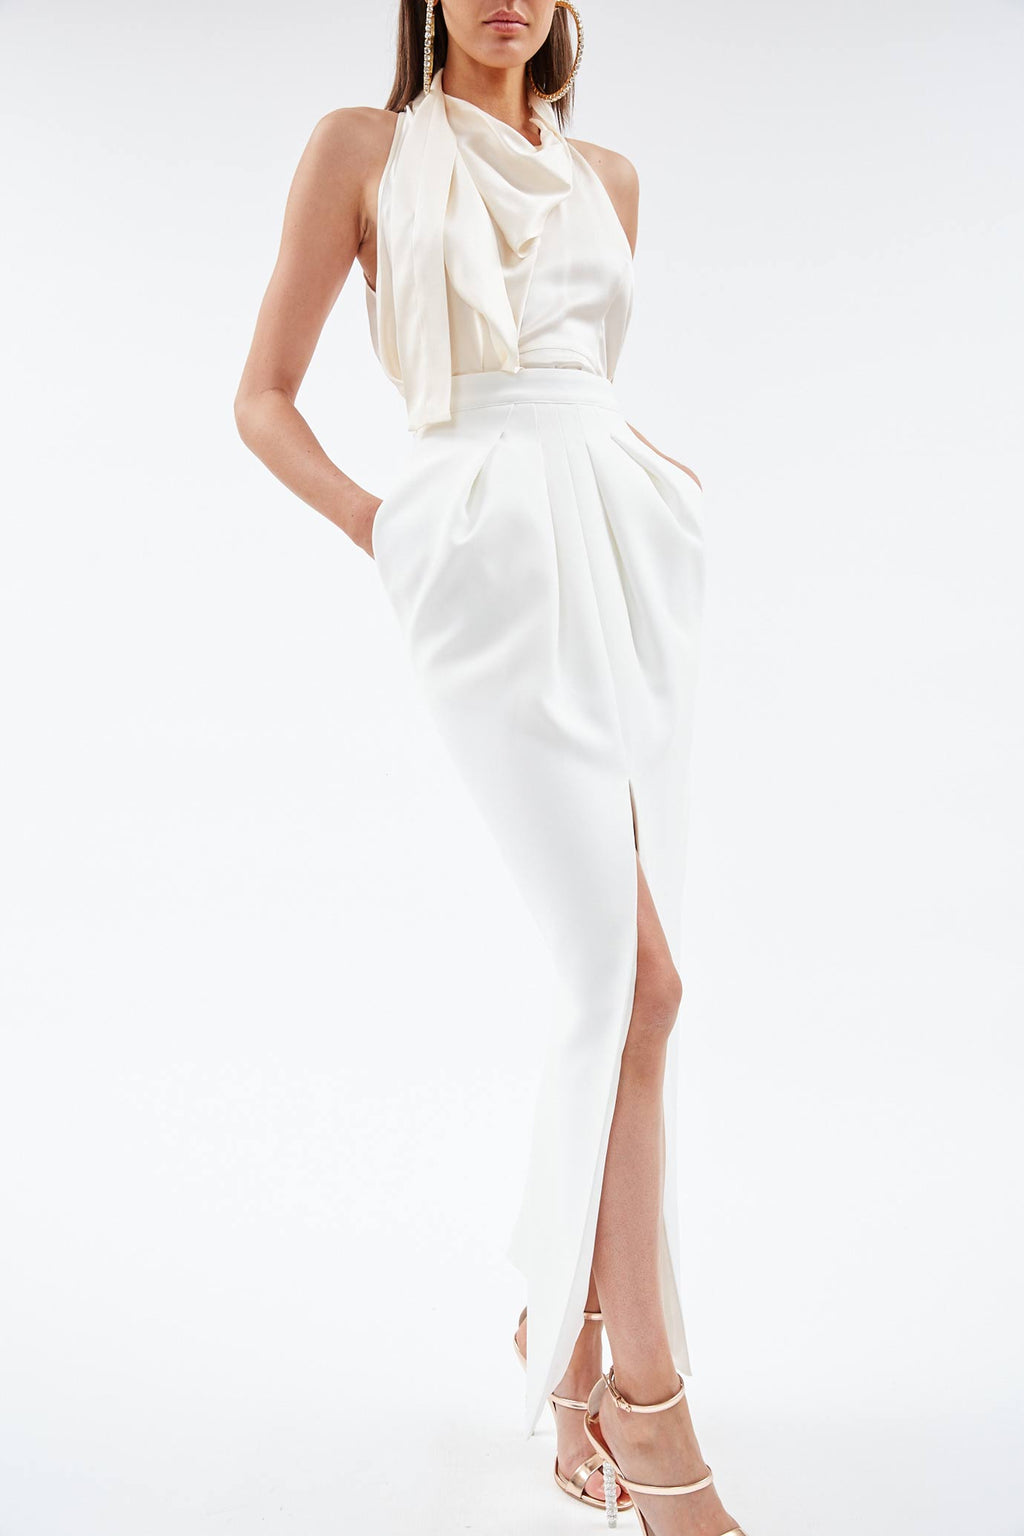 Ensemble White Skirt